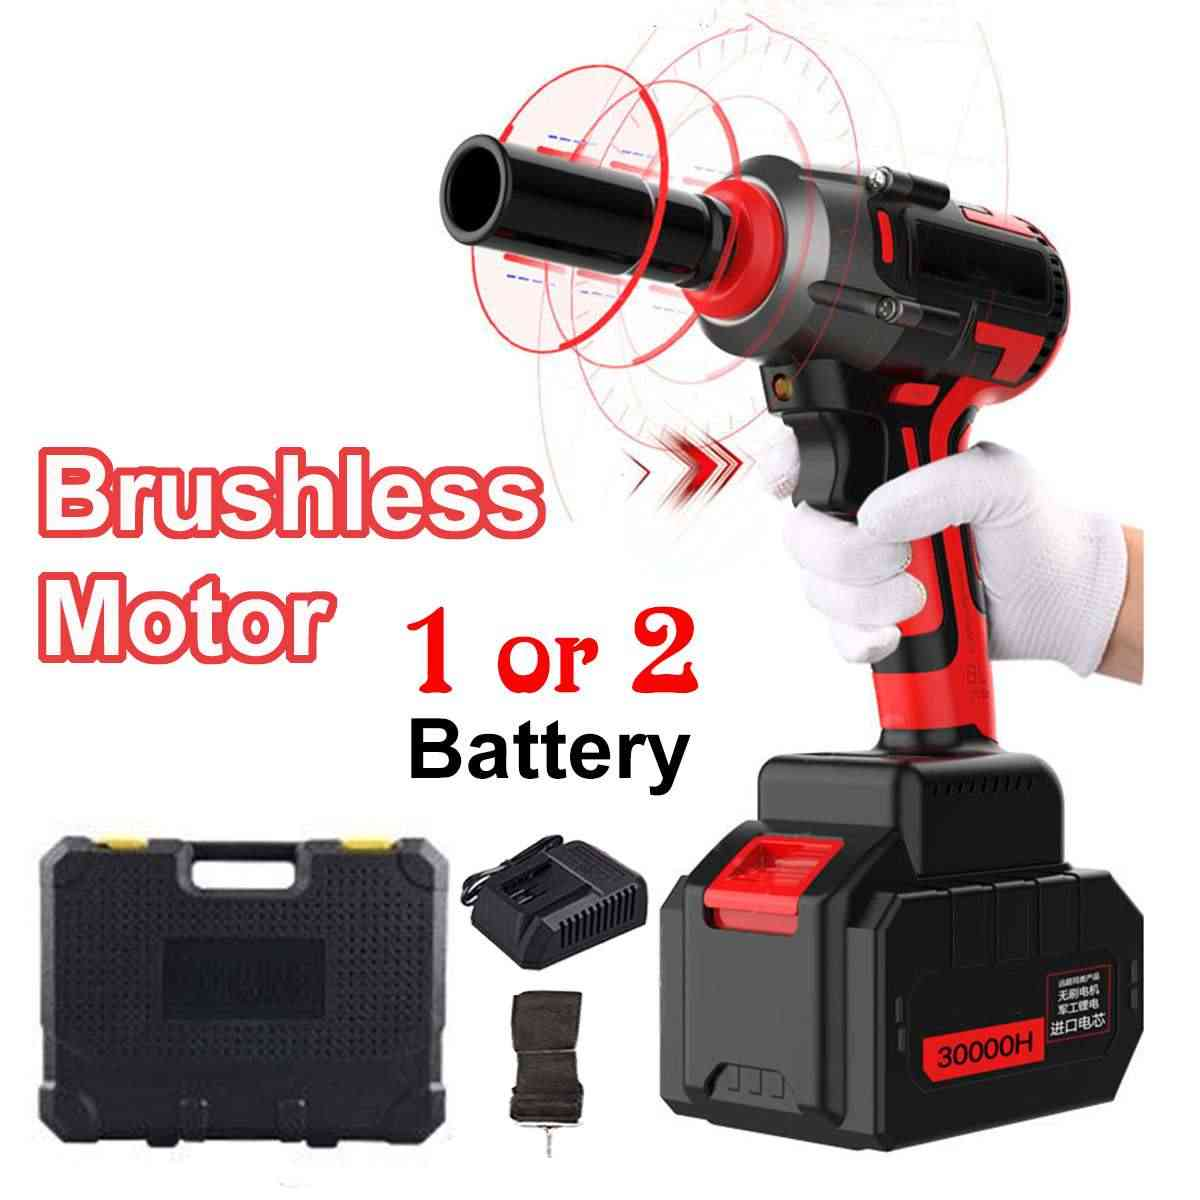 Brushless Electric Wrench Impact Socket Wrench 39800mAh Li Battery 500 N.m Torque Impact Wrench 220v Brushless Car Electric Tool